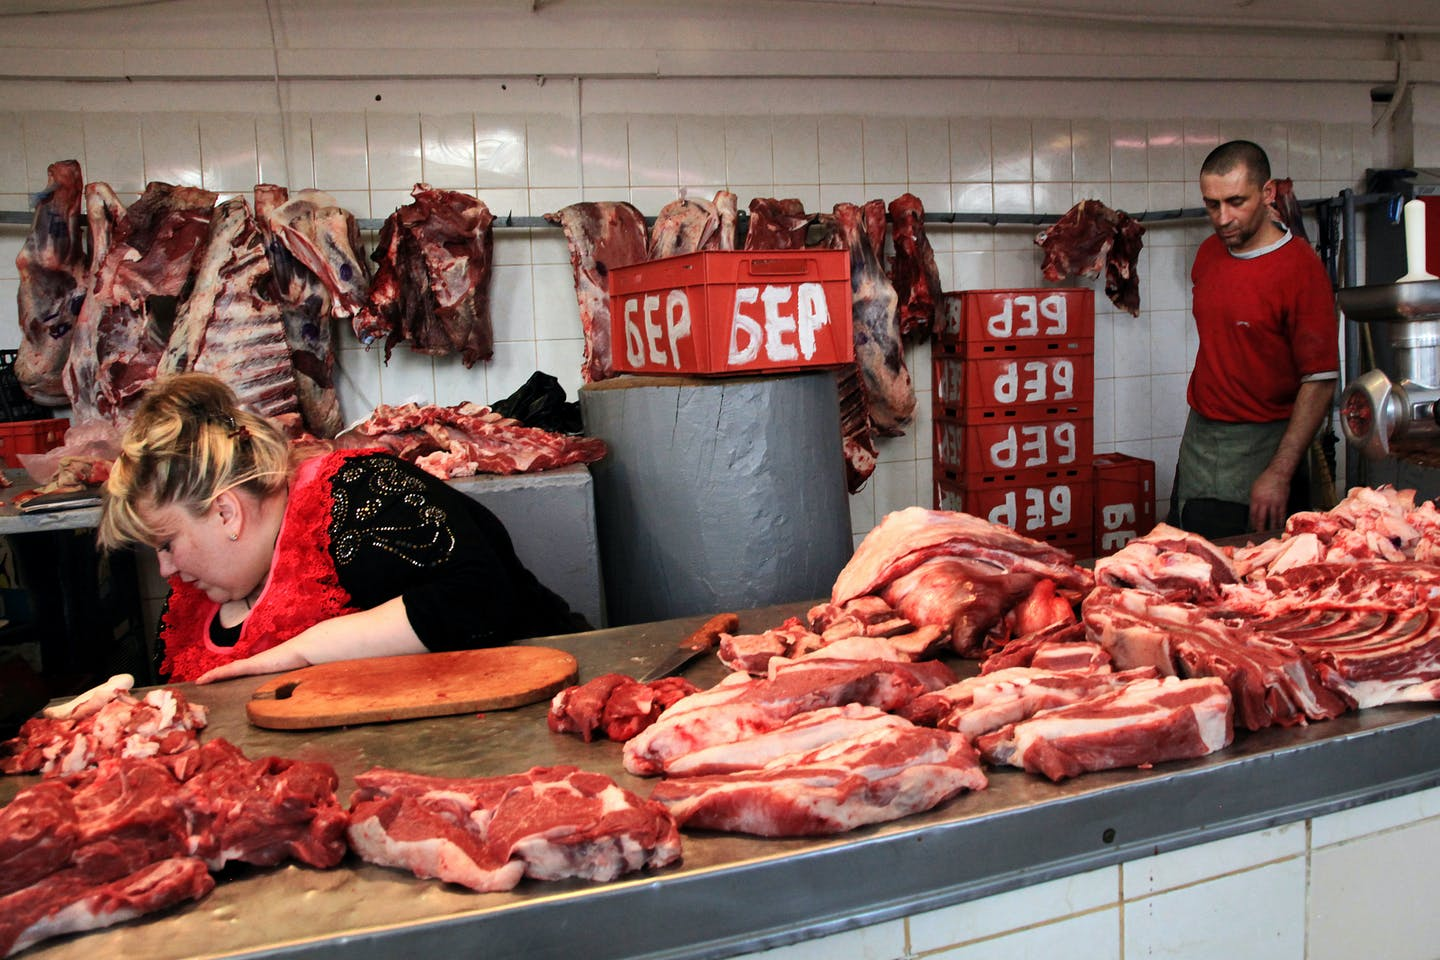 Butcher's shop in Europpe